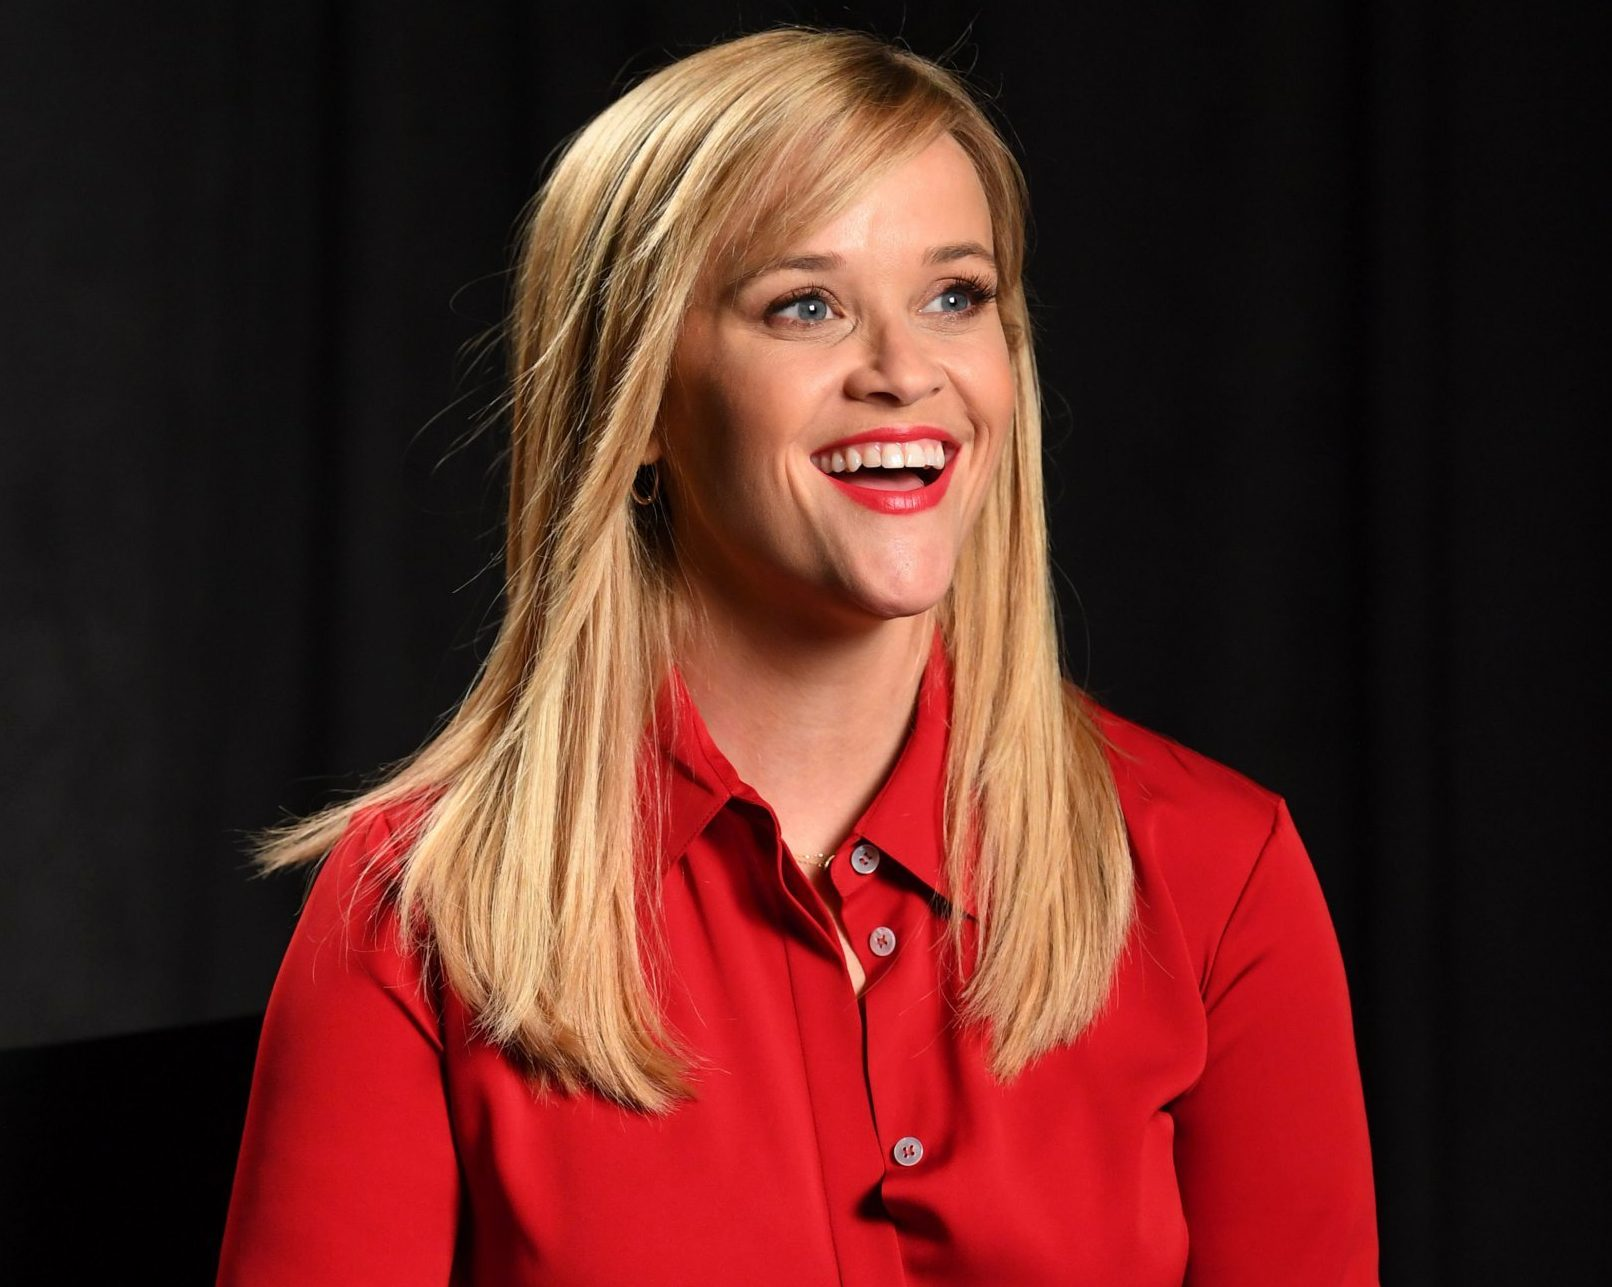 Reese Witherspoon's biggest beauty regret is plucking the life out of her eyebrows and girl, same